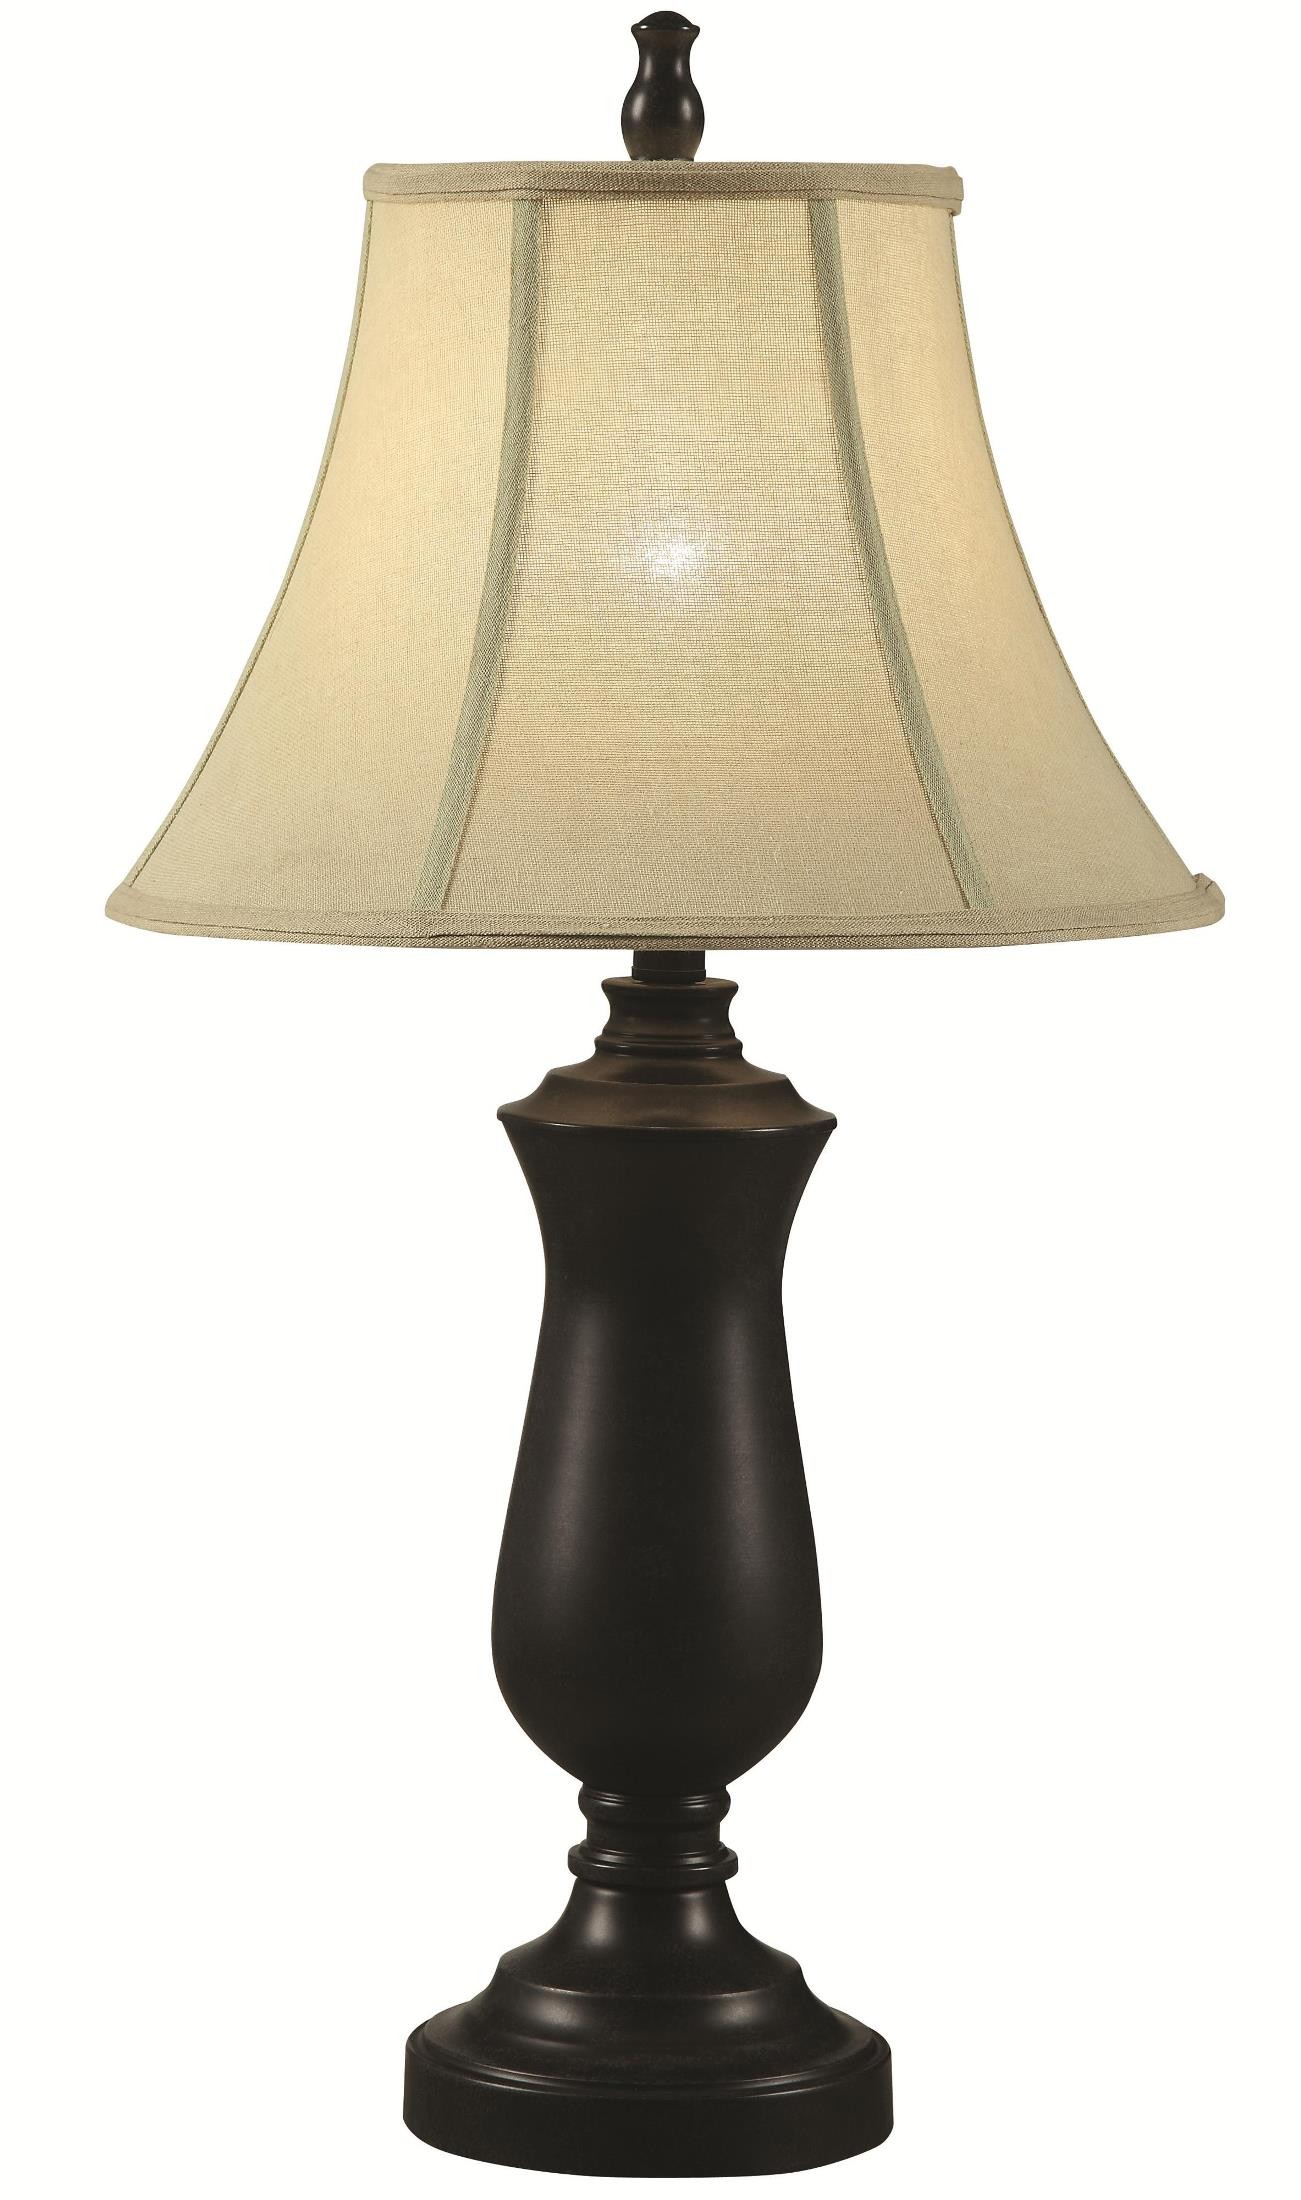 901535 Table Lamp Set Of 2 From Coaster 901535